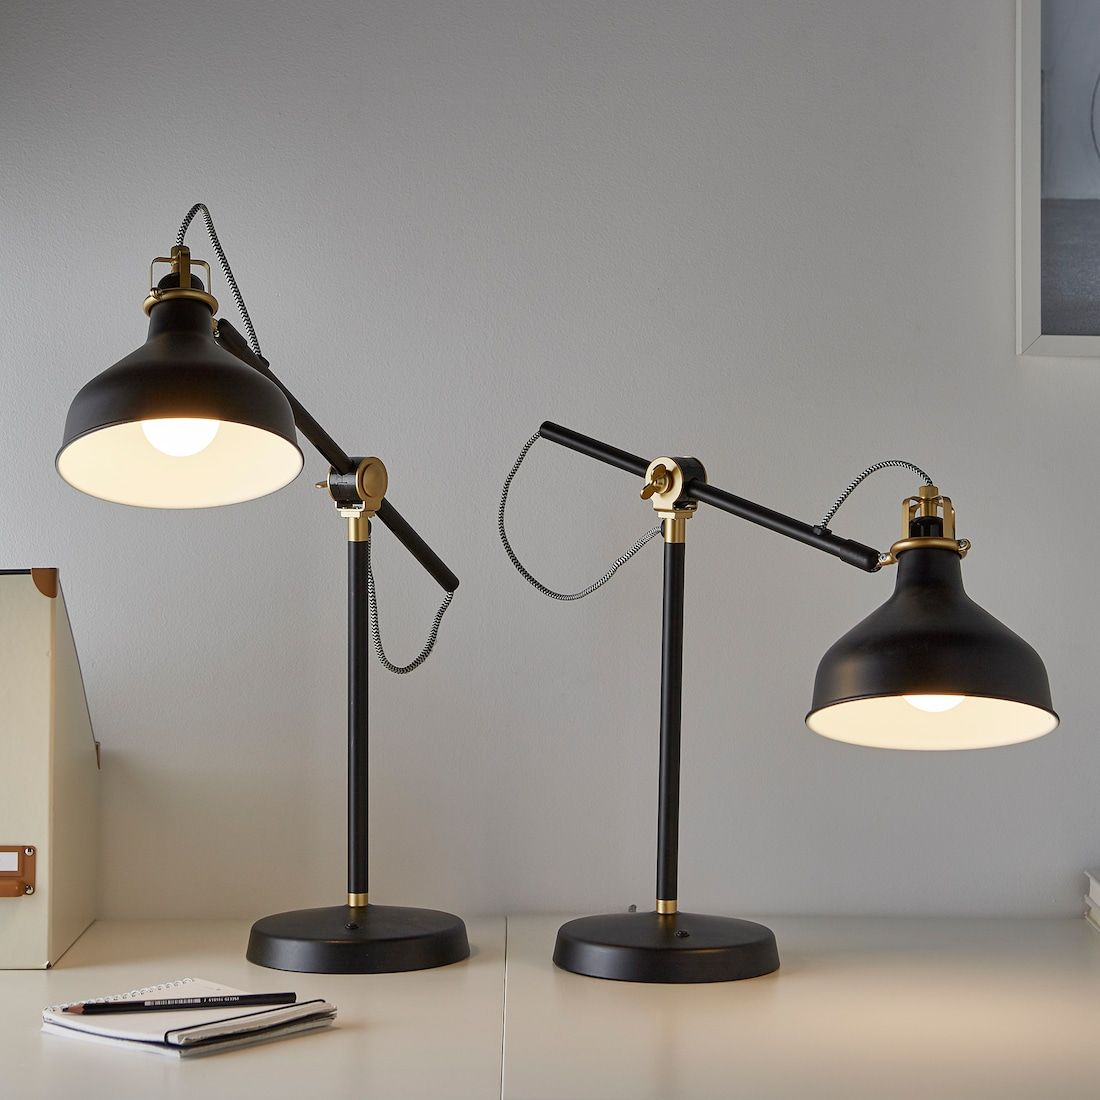 RANARP Work lamp with LED bulb, black IKEA in 2020 | Lamp